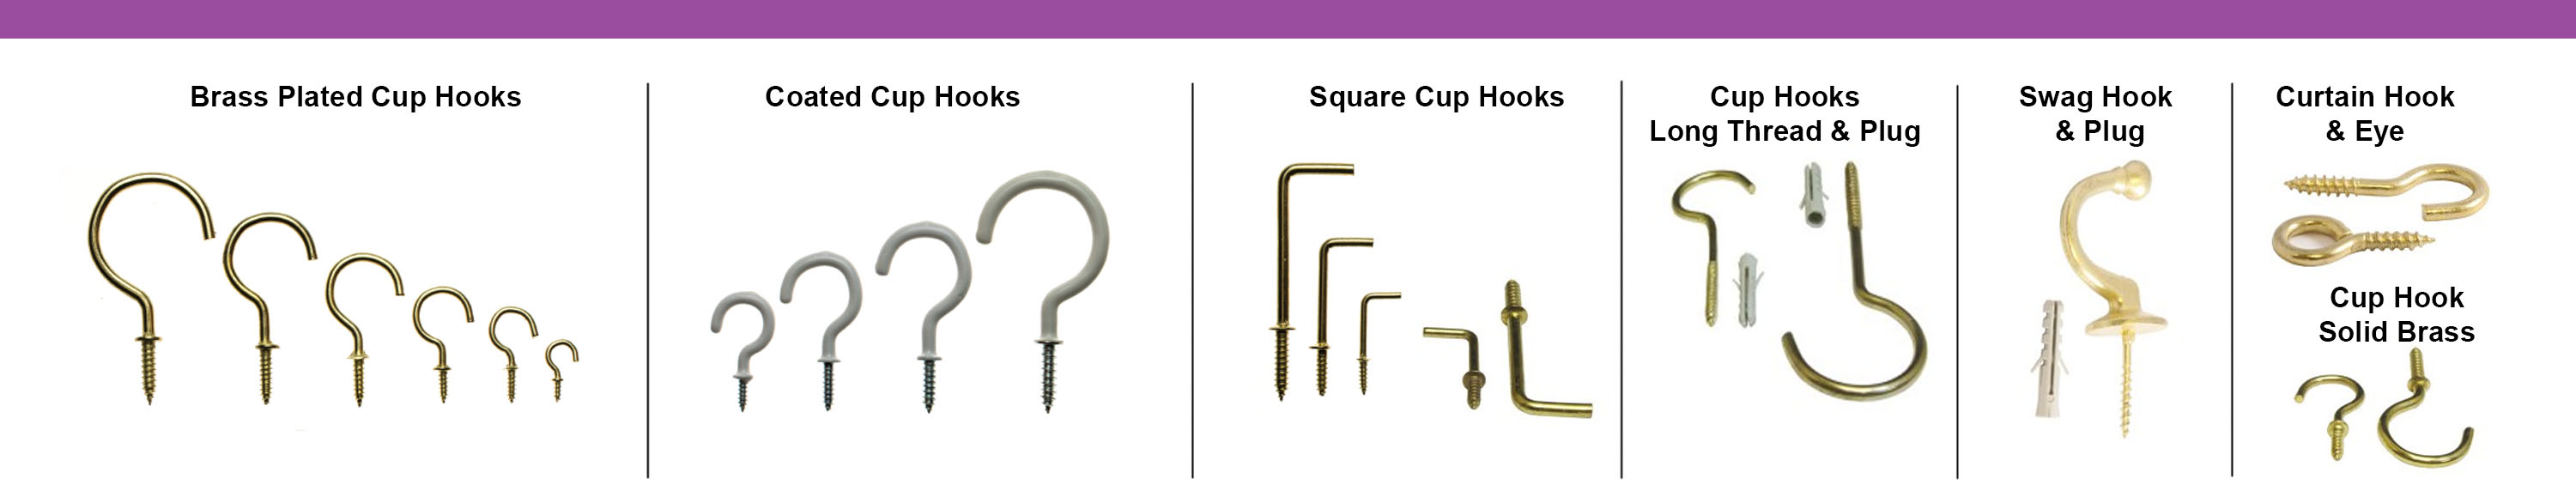 Cup Hooks